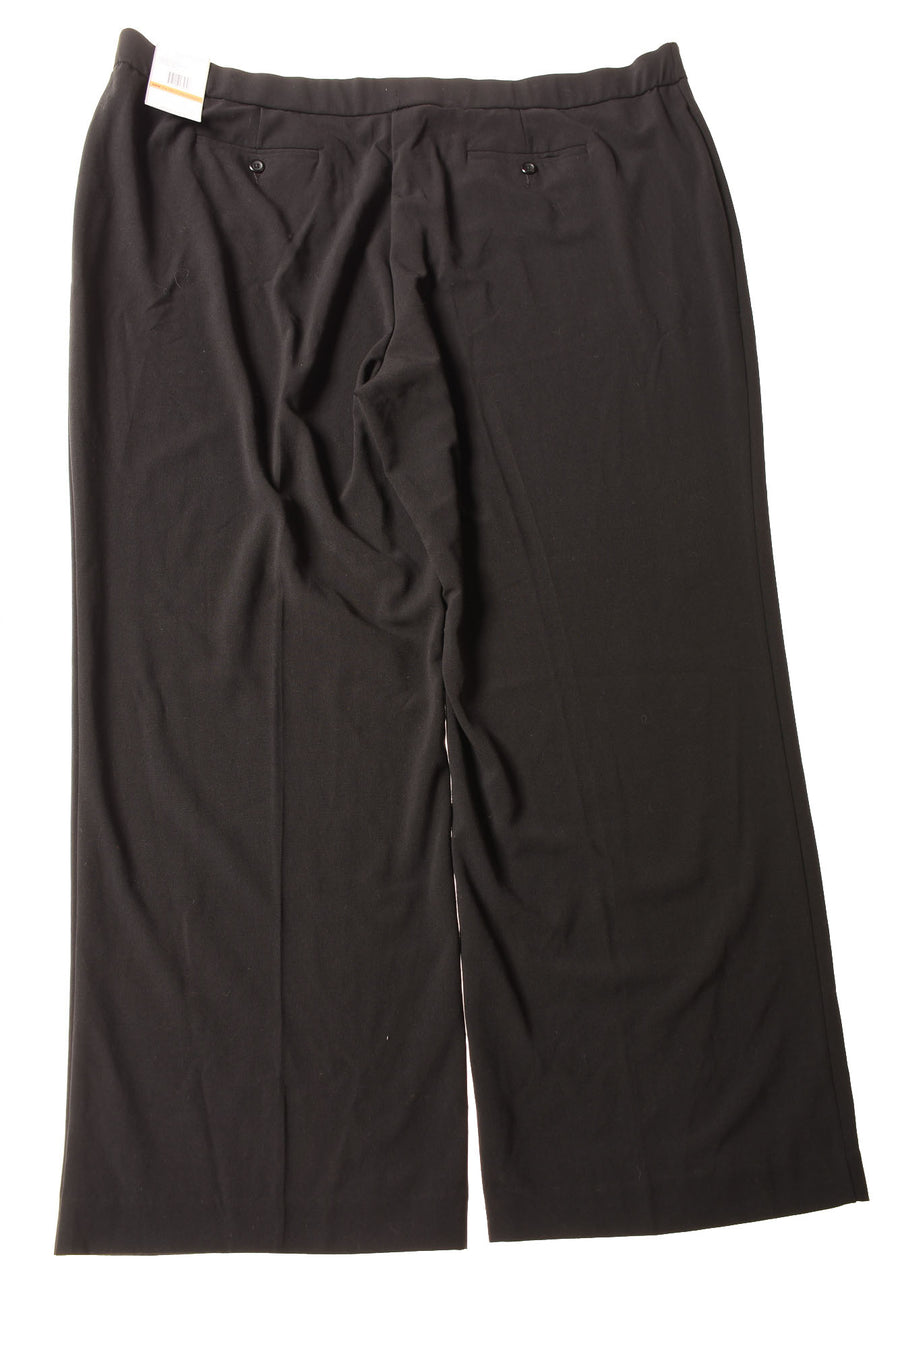 NEW Sag Harbor Women's Slacks 24 Black